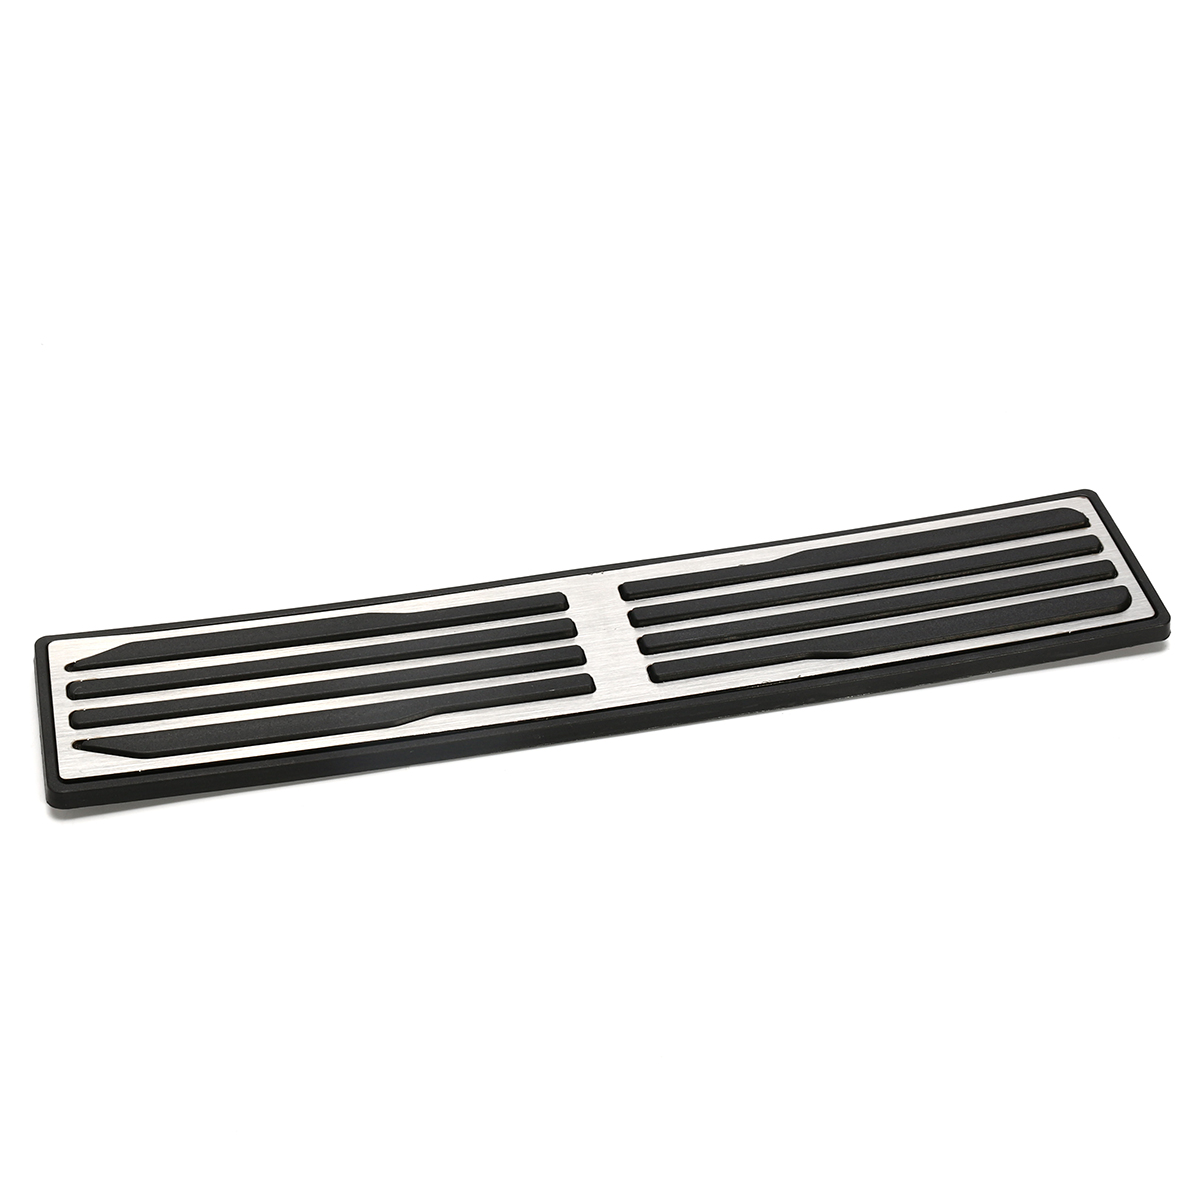 Benryhome 25 4 5cm Car Footrest Foot Rest Pedal Pad